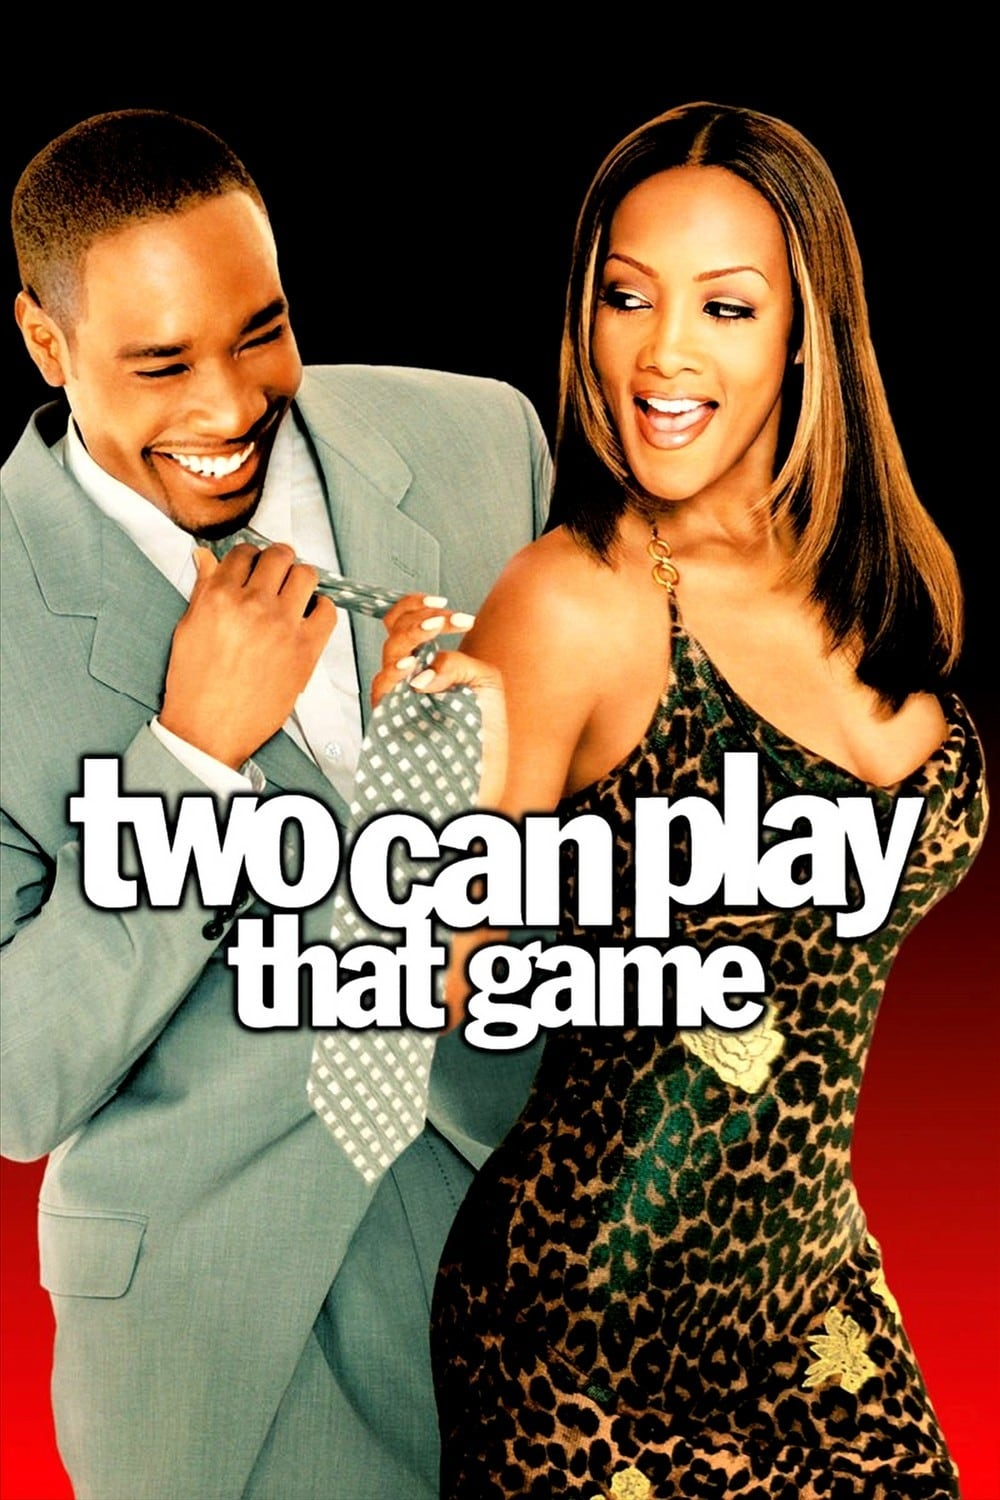 an analysis of the film two can play that game Critics consensus: as a romantic comedy, two can play that game is more mean-spirited than romantic also, some critics say the movie is misogynistic love really is a battlefield in this war of the sexes comedy that marks the directorial debut of def jam's how to be a player (1997) screenwriter.